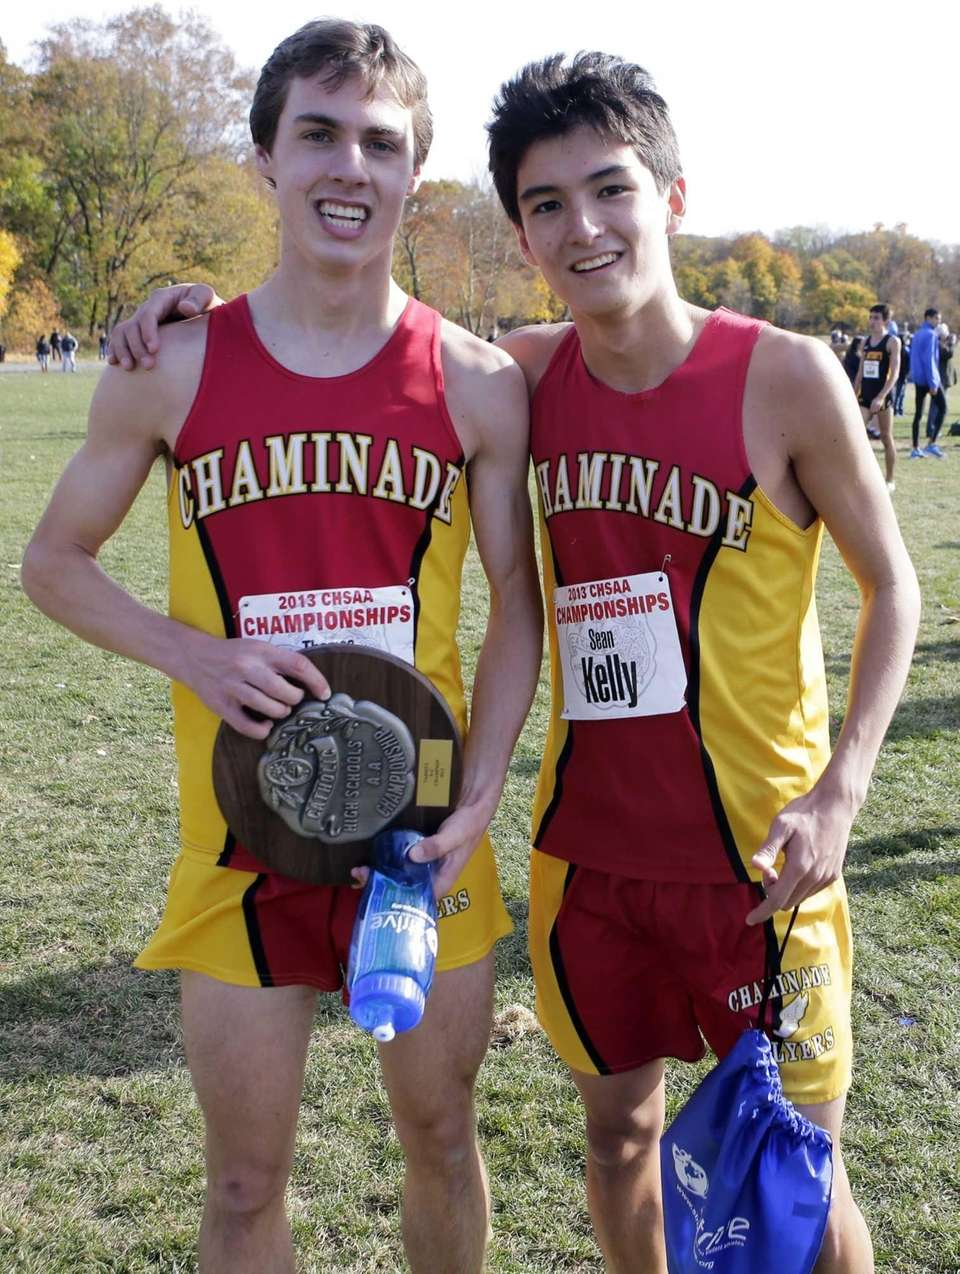 Thomas Slattery, left, and Sean Kelly of Chaminade